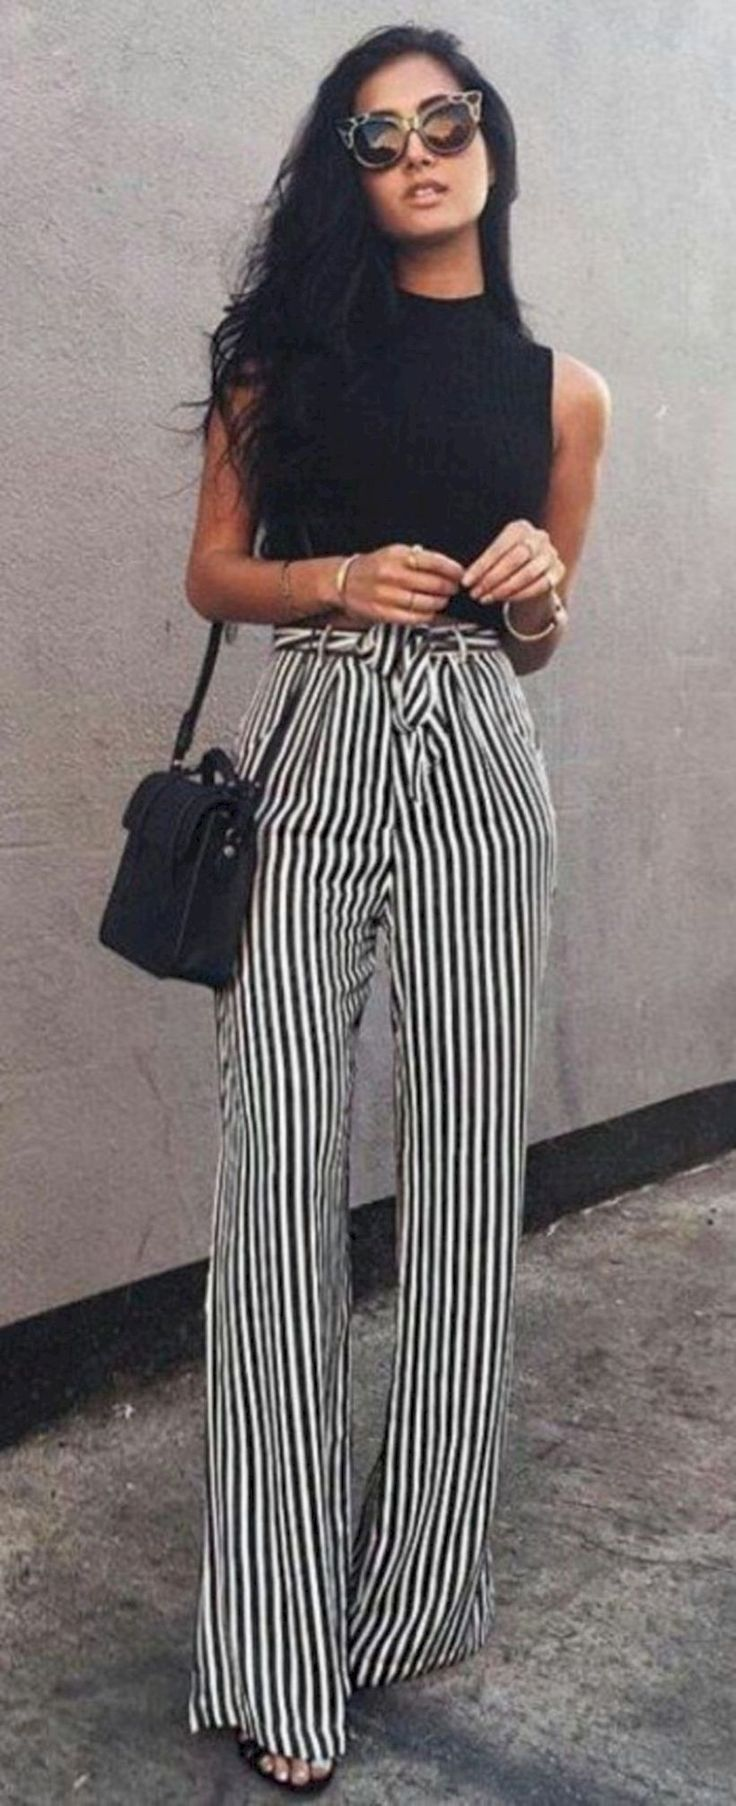 30 Classy Women Outfits Ideas For Summer 2